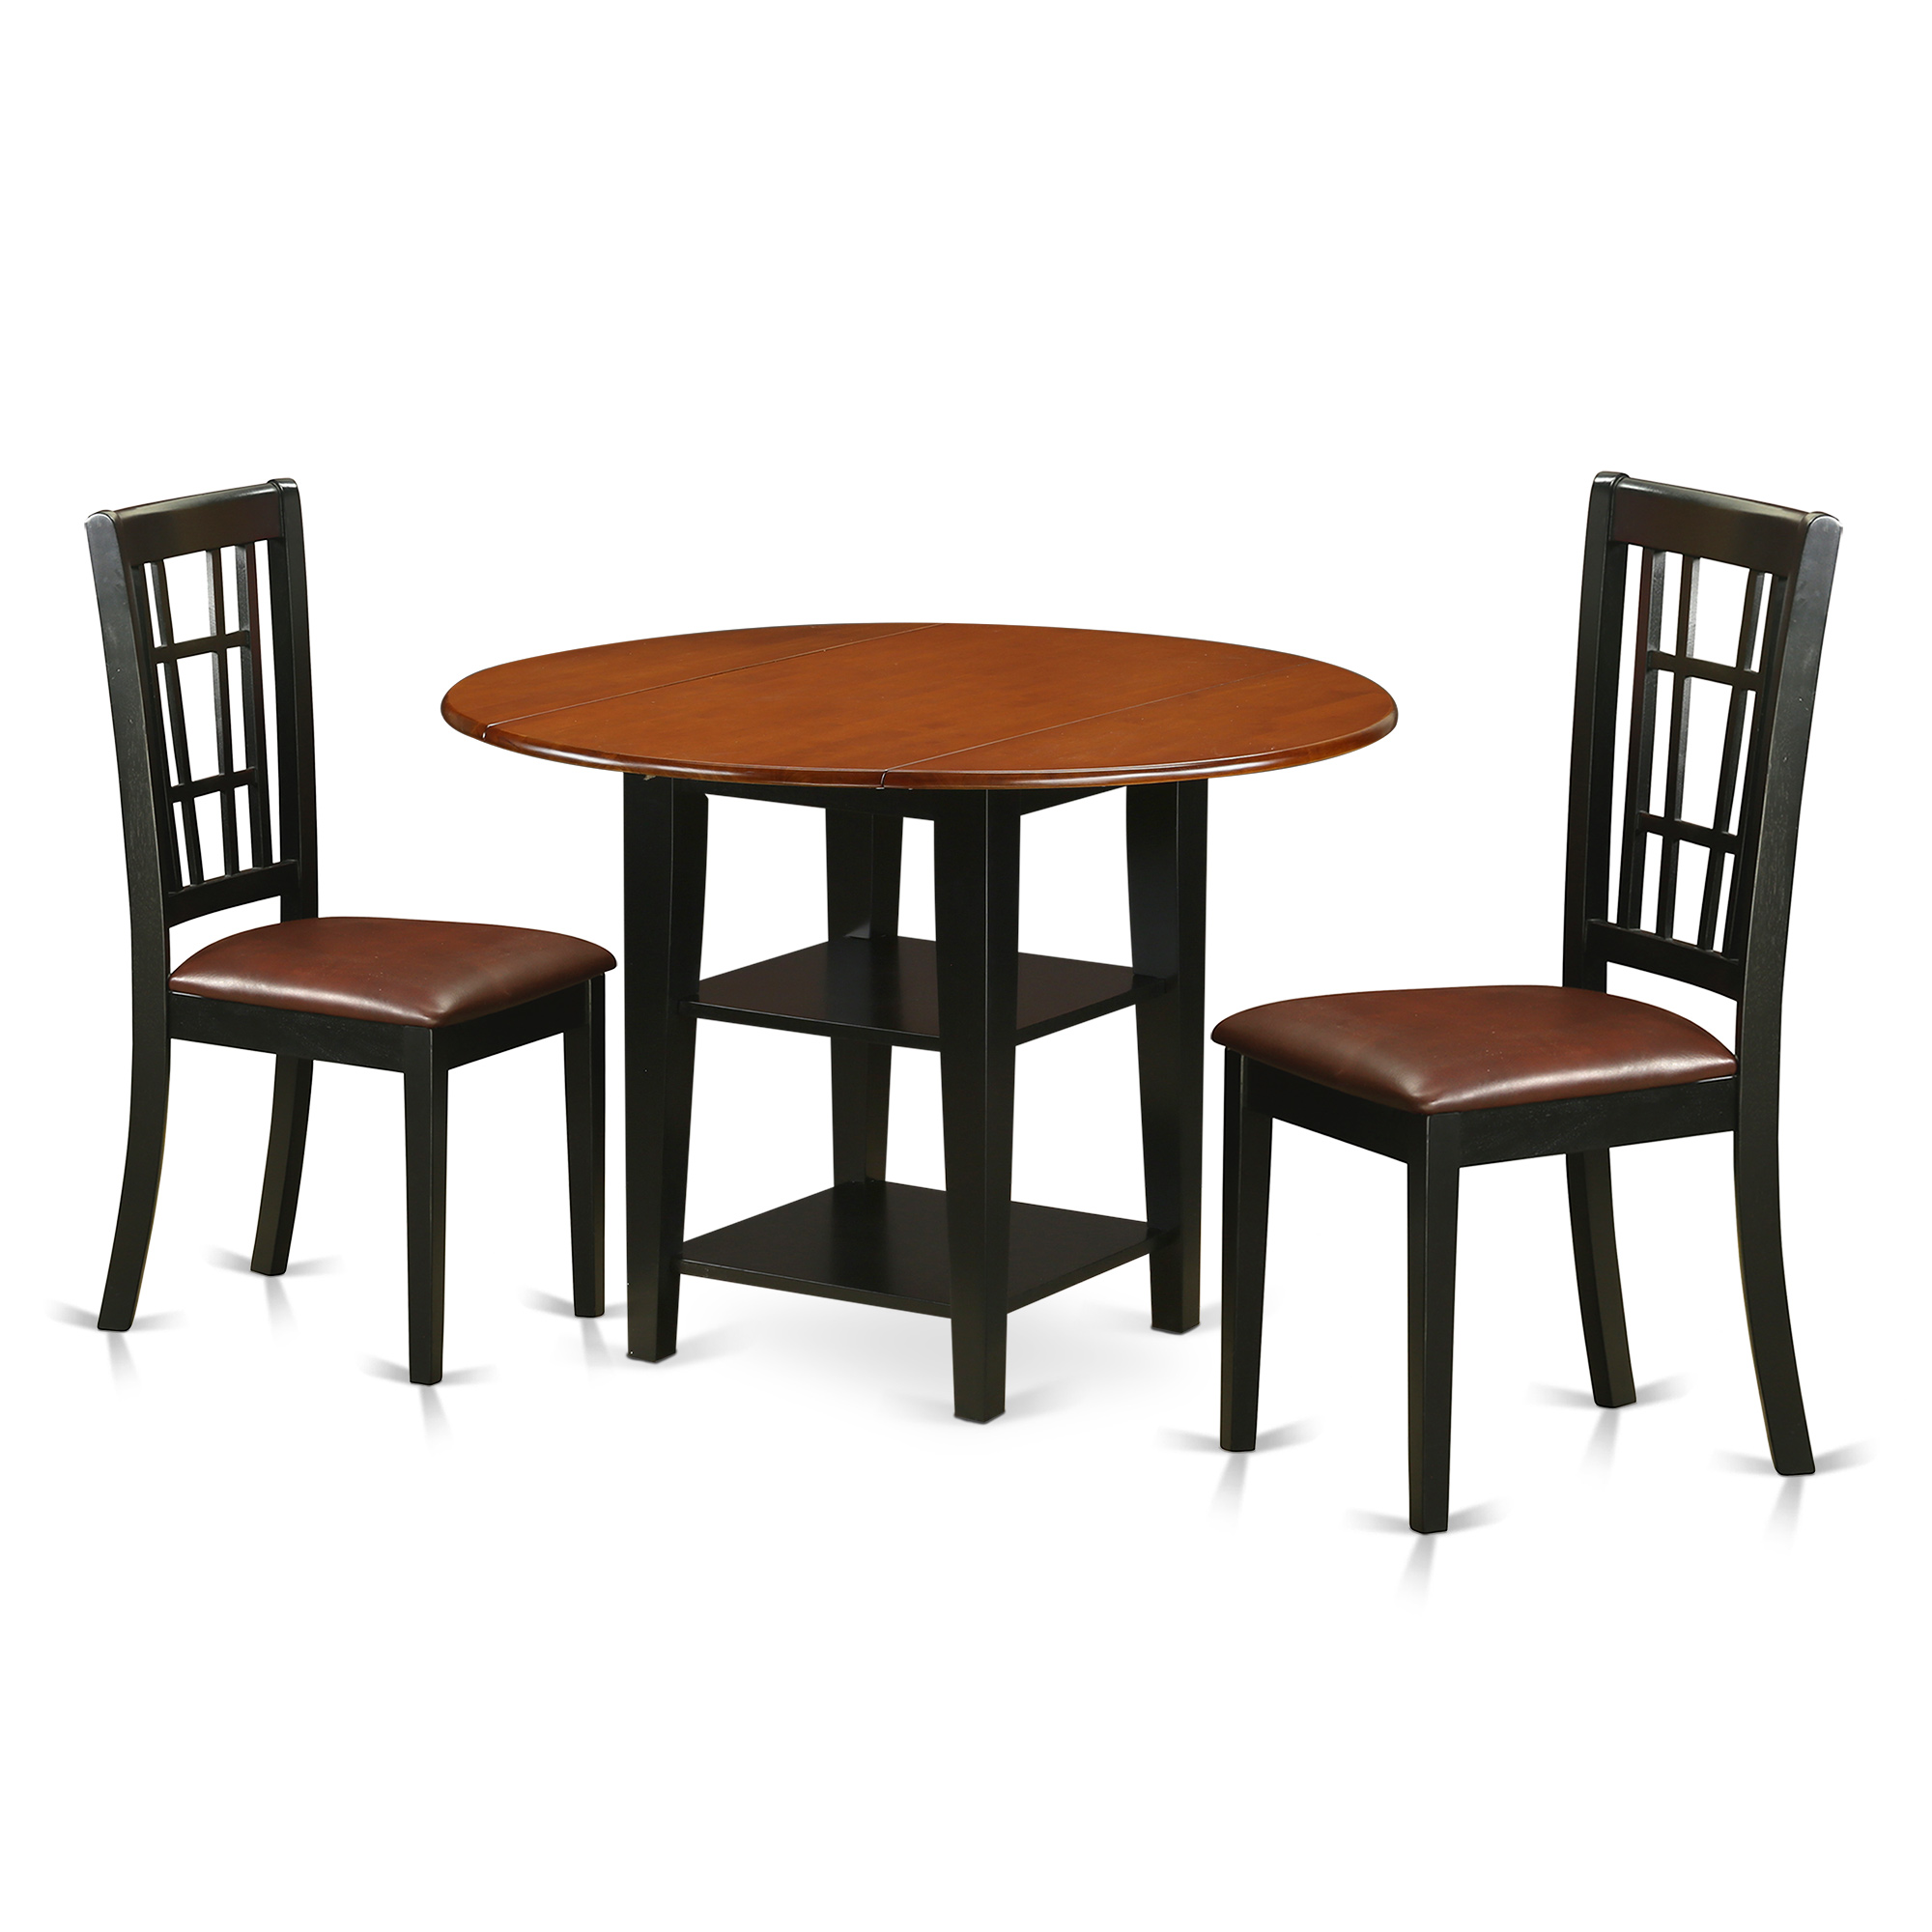 Dining Room Chairs With Leather Seats 2